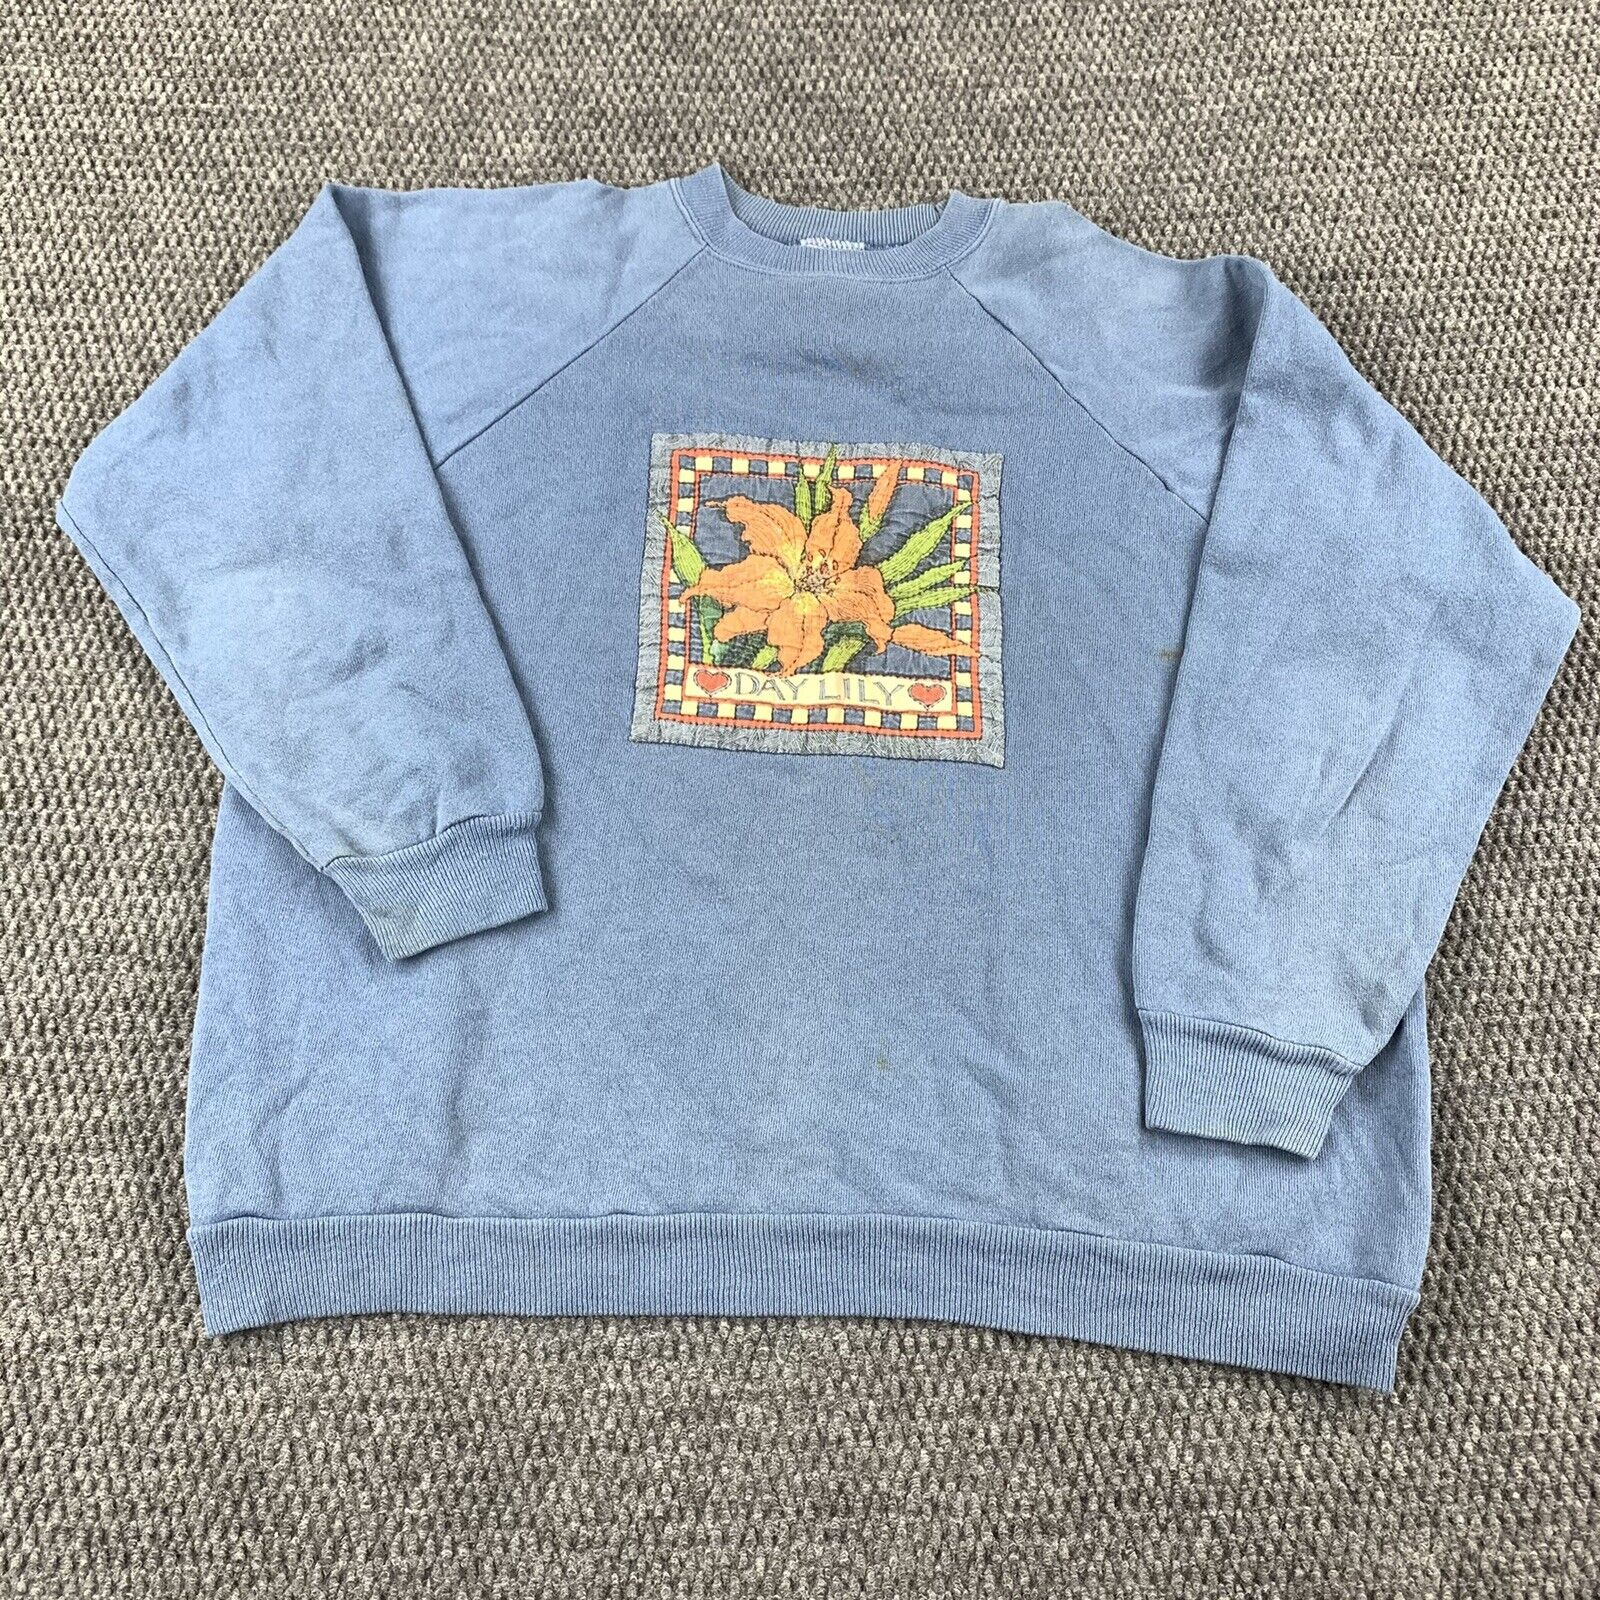 1990s Vintage Hanes Her Way Hand Embroidered Flower Floral Fabric T-Shirt